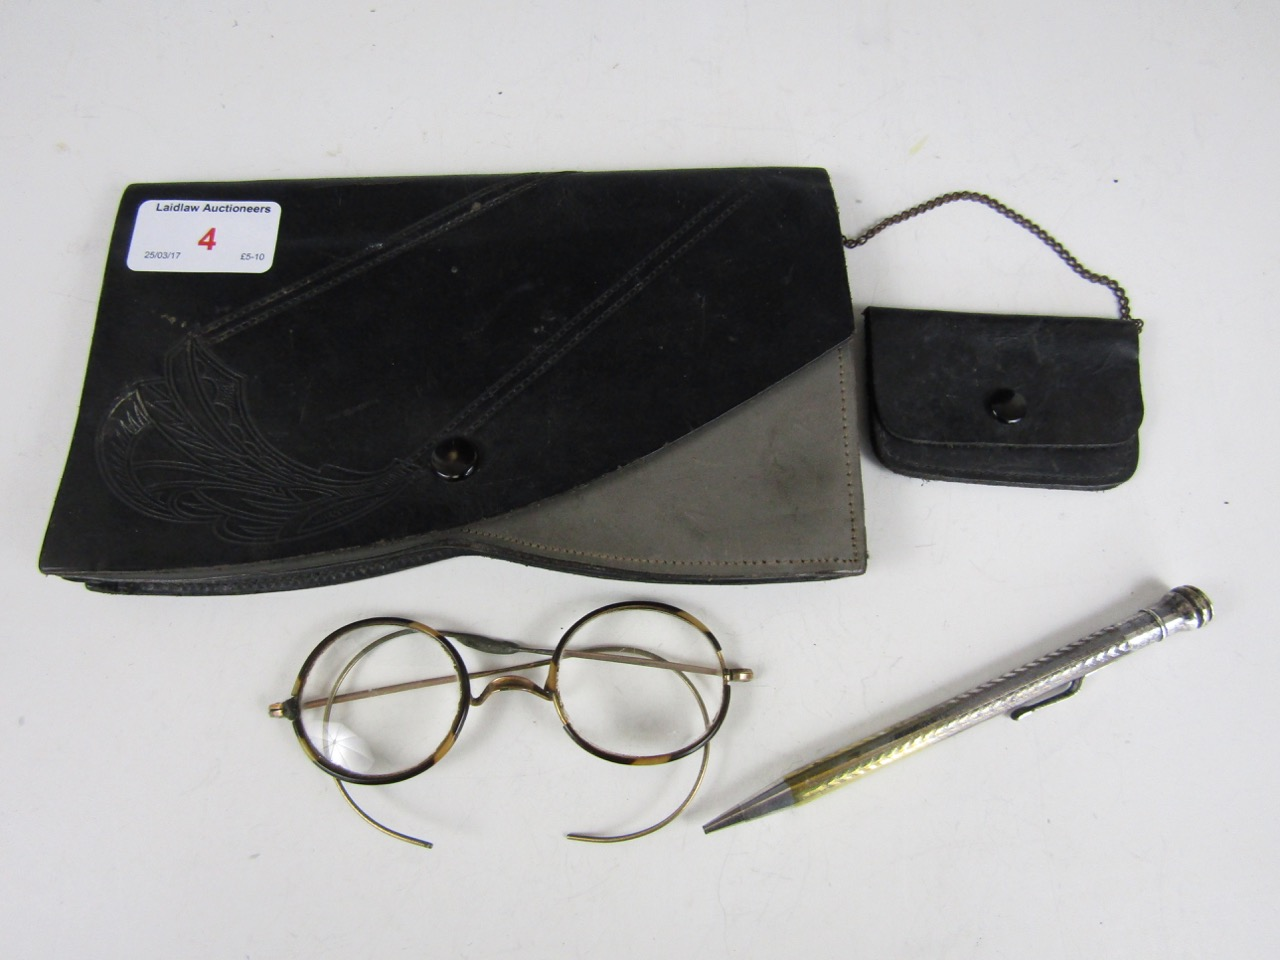 Lot 4 - Vintage tortoiseshell rimmed spectacles, a propelling pencil and a vintage purse